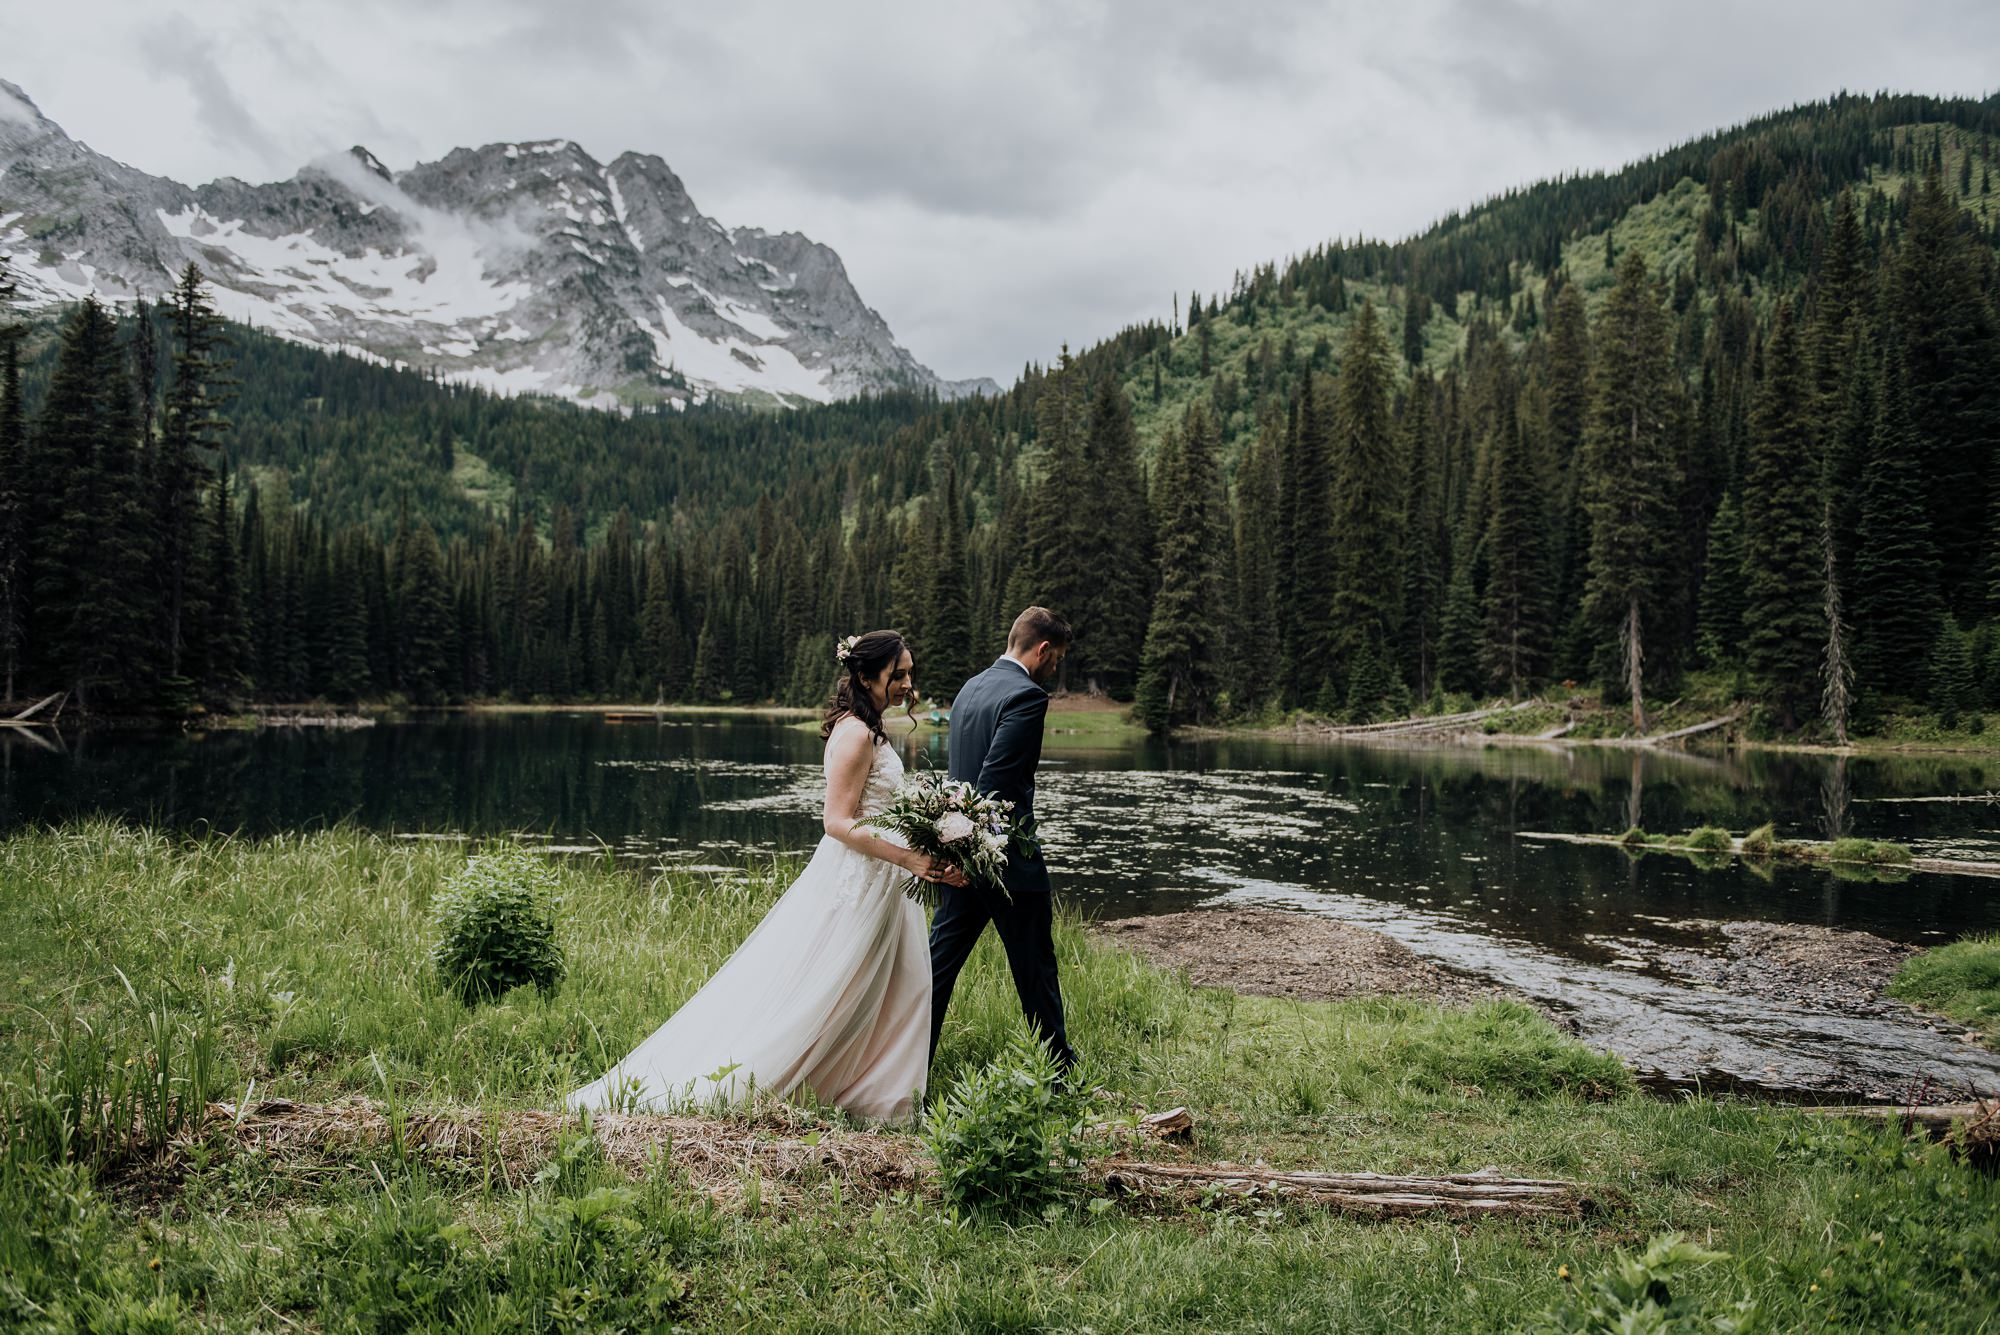 bride and groom in front of lake and mountains at island lake lodge wedding